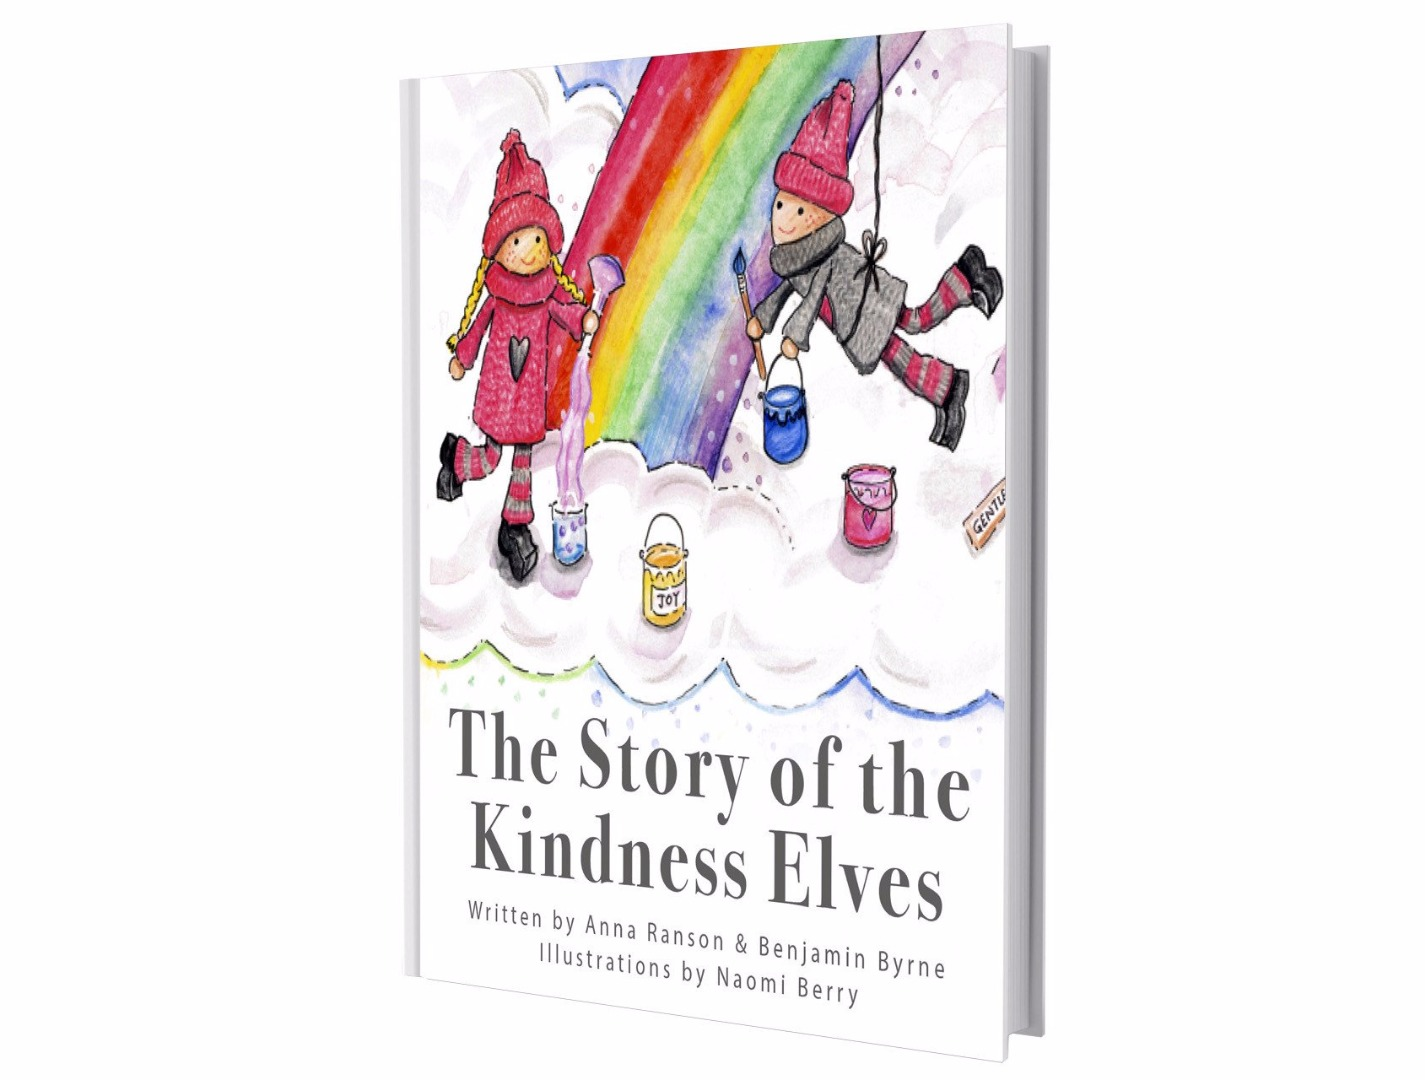 Story of the Kindness Elves